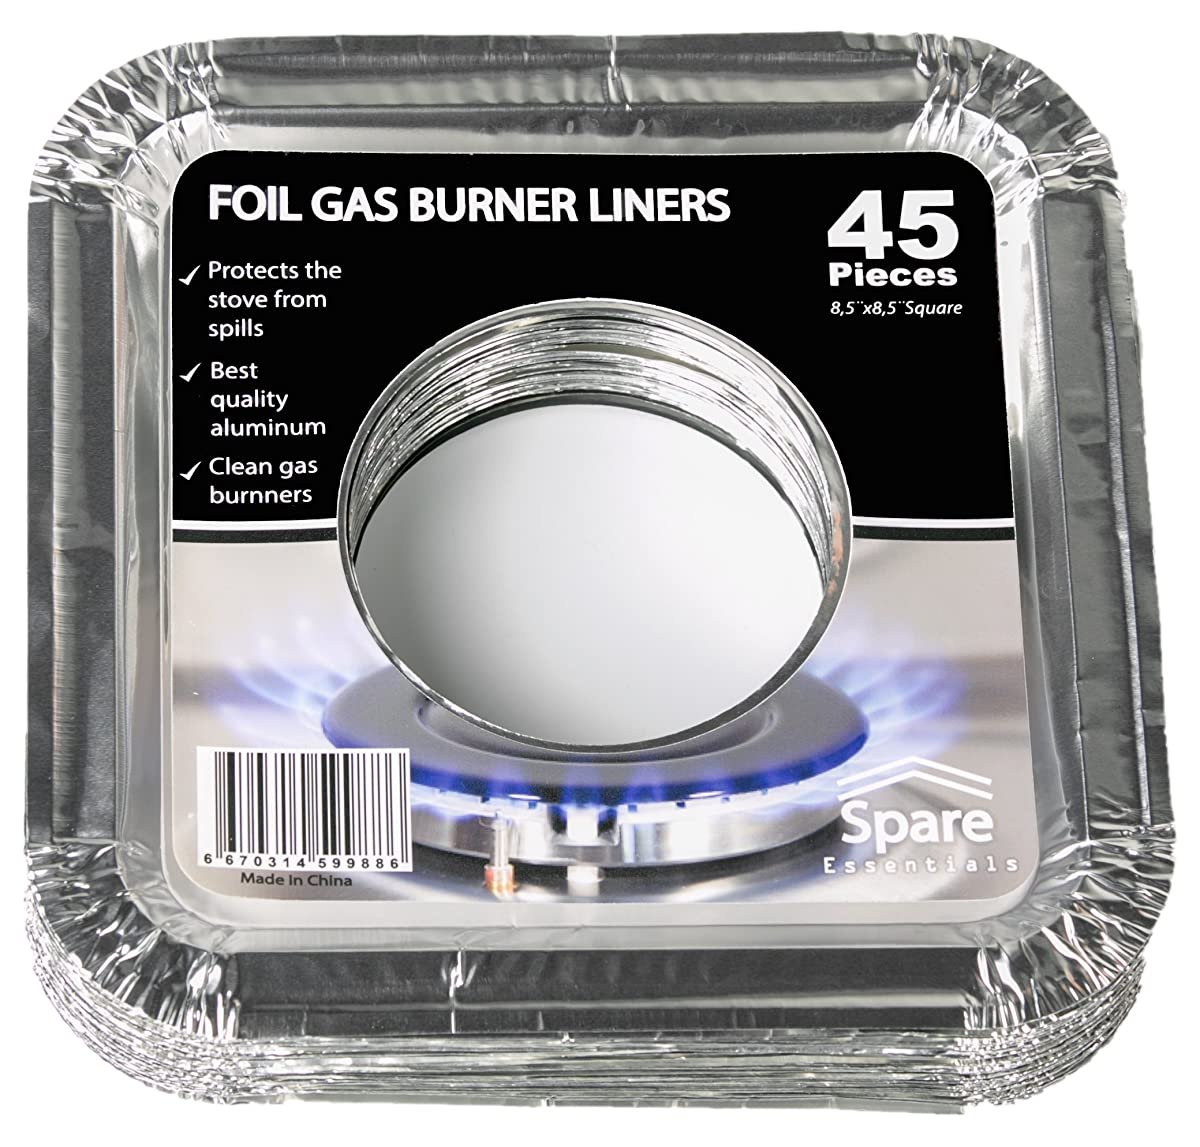 "45PACK Aluminum Foil Square Stove Burner Covers Range Protectors Bib Liners Disposable Gas Burner Bibs Gas Top Liner Stove Easy Clean - (8.5"" Square) from Spare"